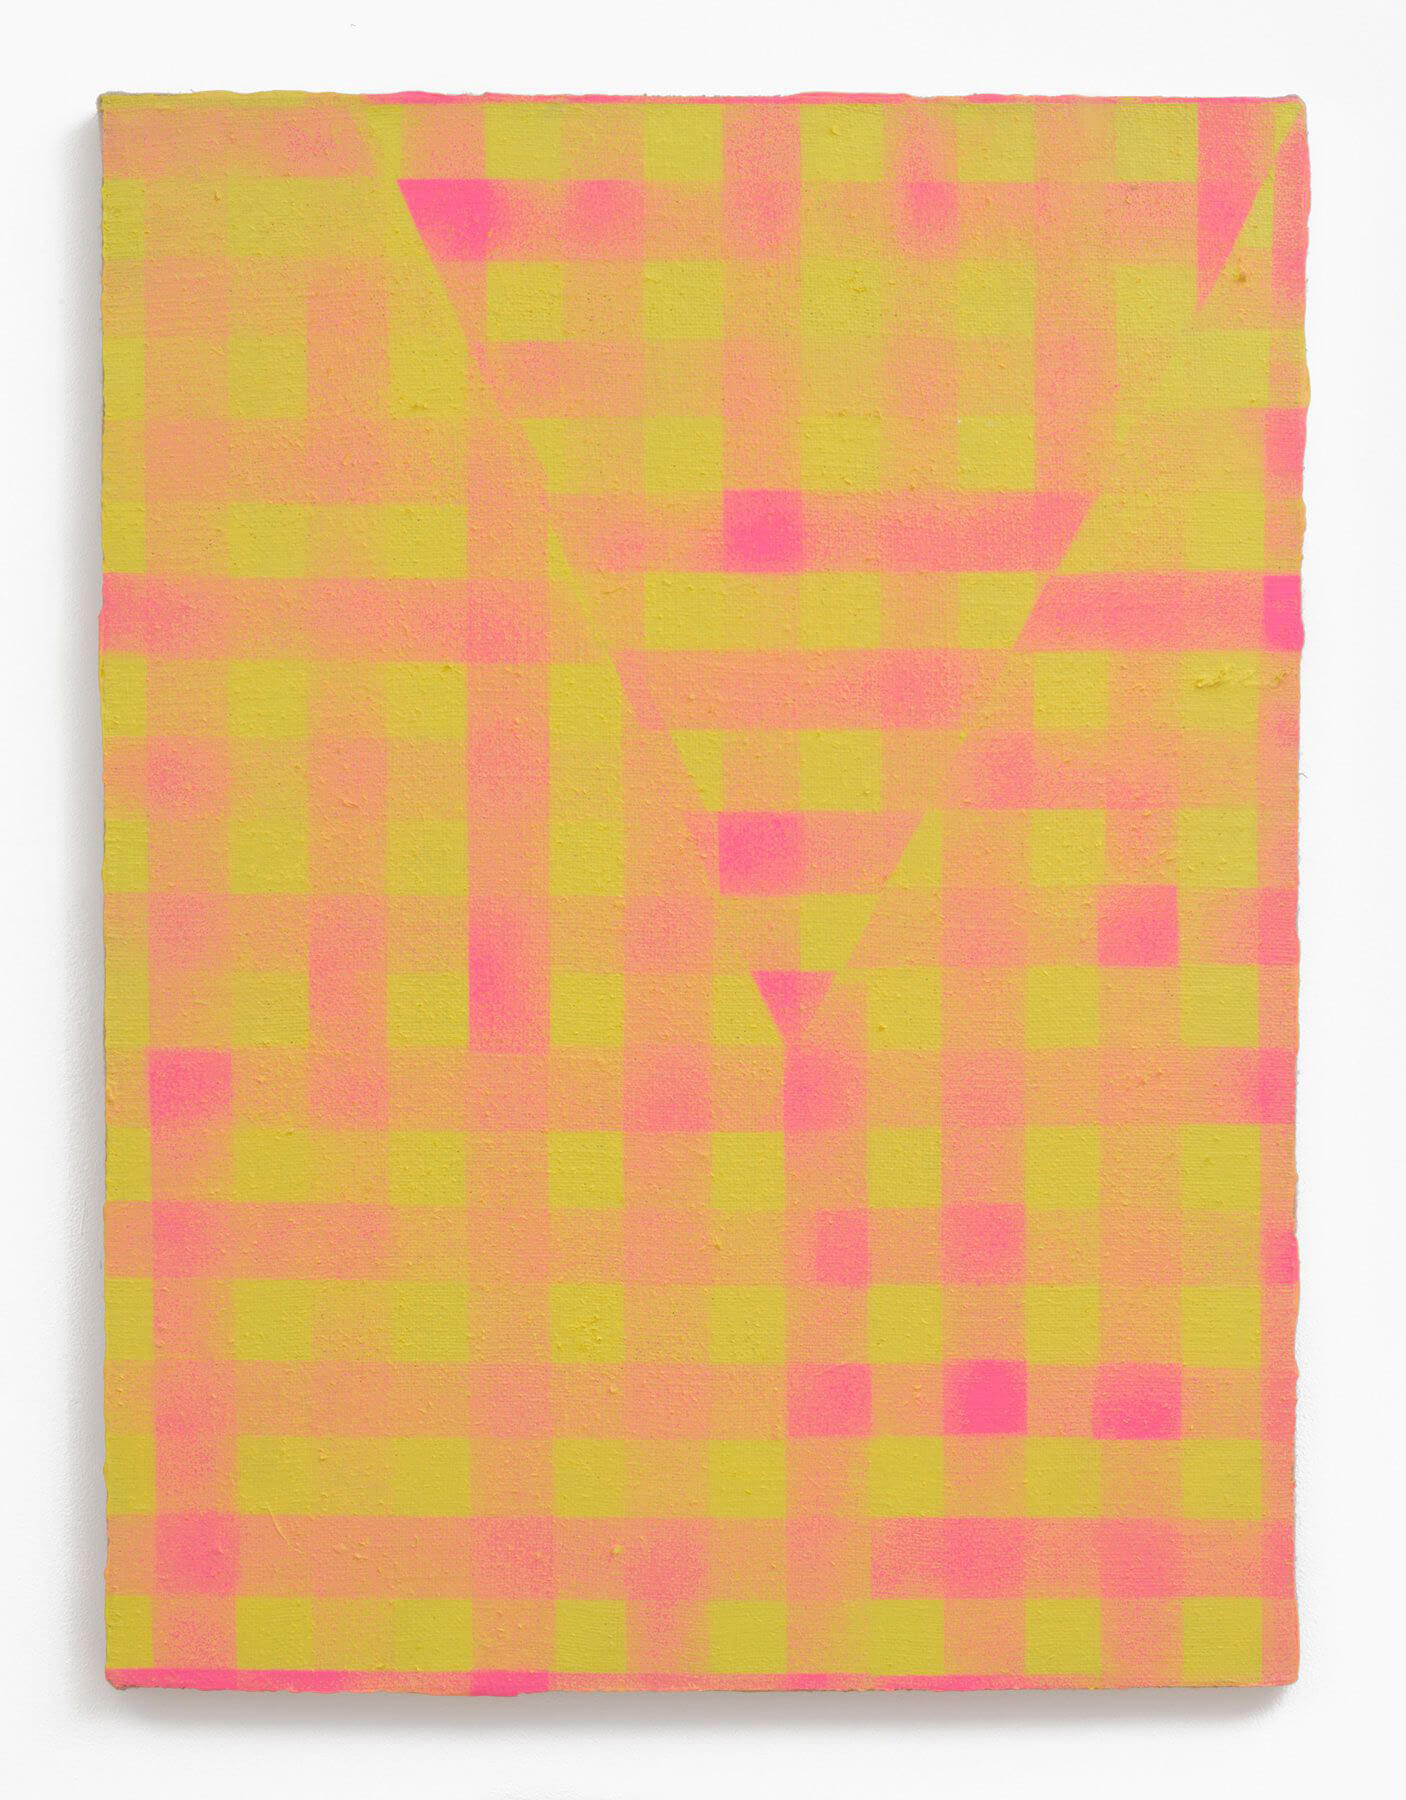 Cheryl Donegan                                             'Untitled (yellow and hot pink)', 2013                                             40 x 30 Inches                                             acrylic on jute